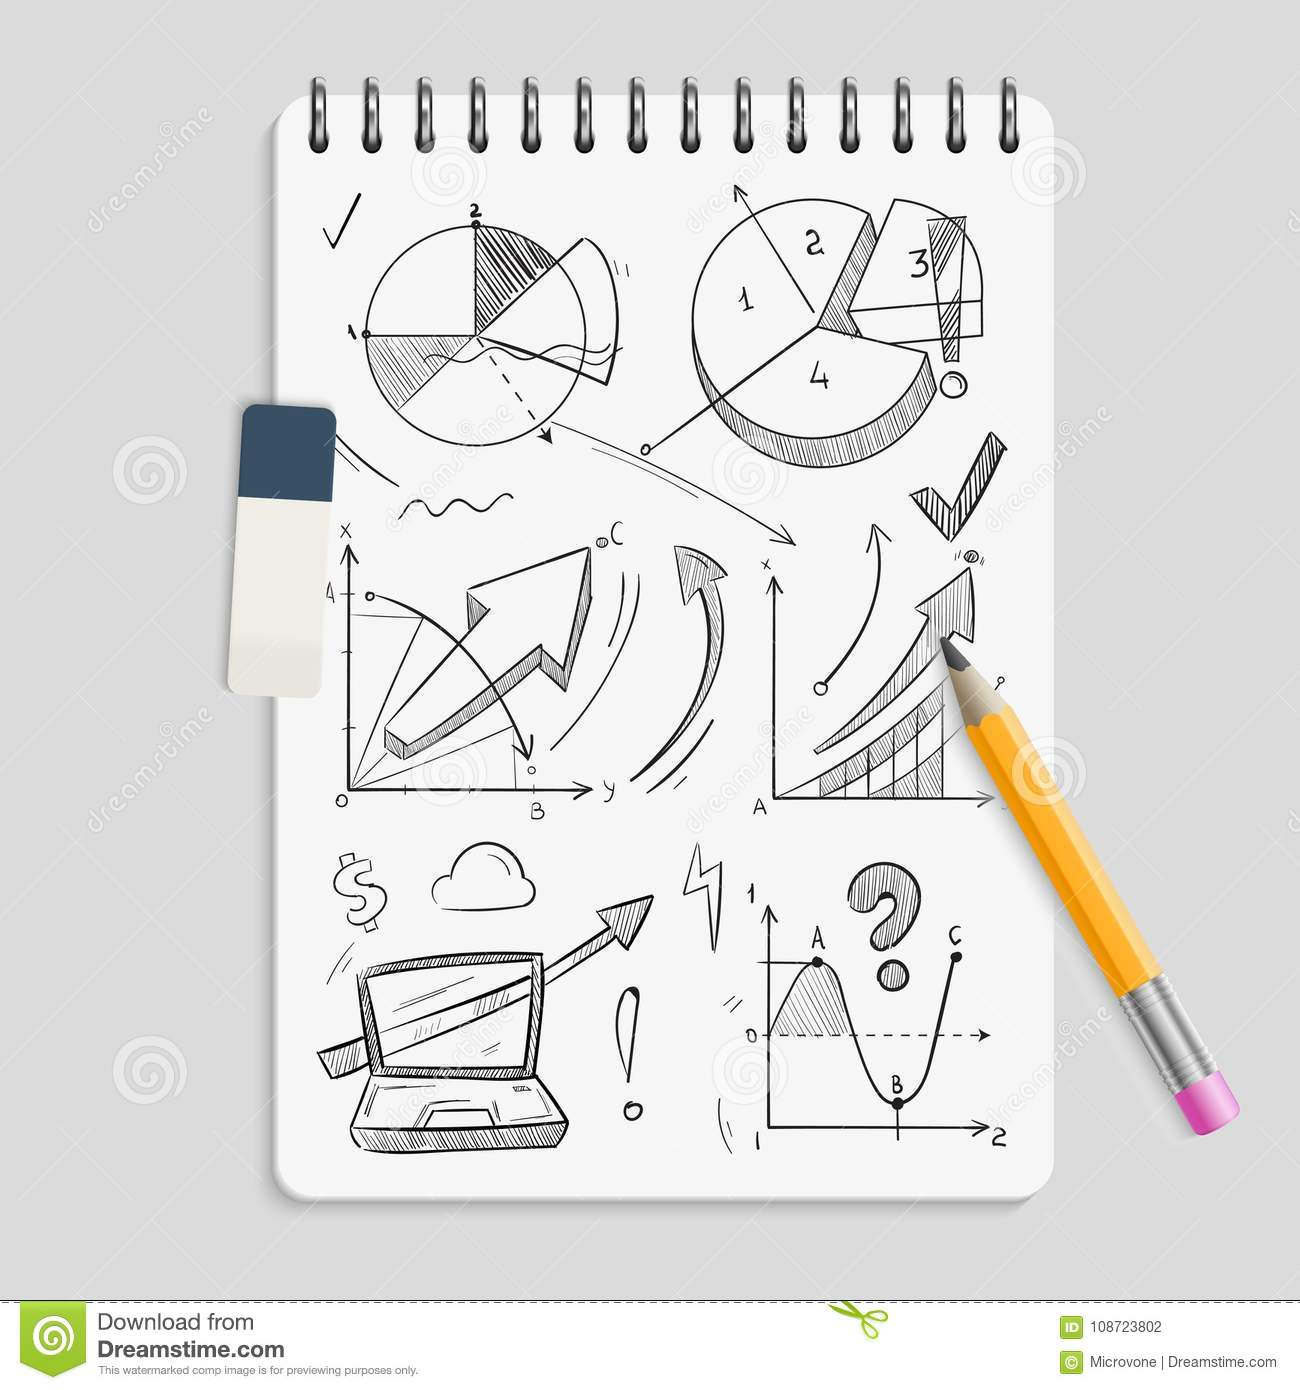 hight resolution of business graphics pencil sketches on realistic notebook with eraser and pencil brainstorm concept